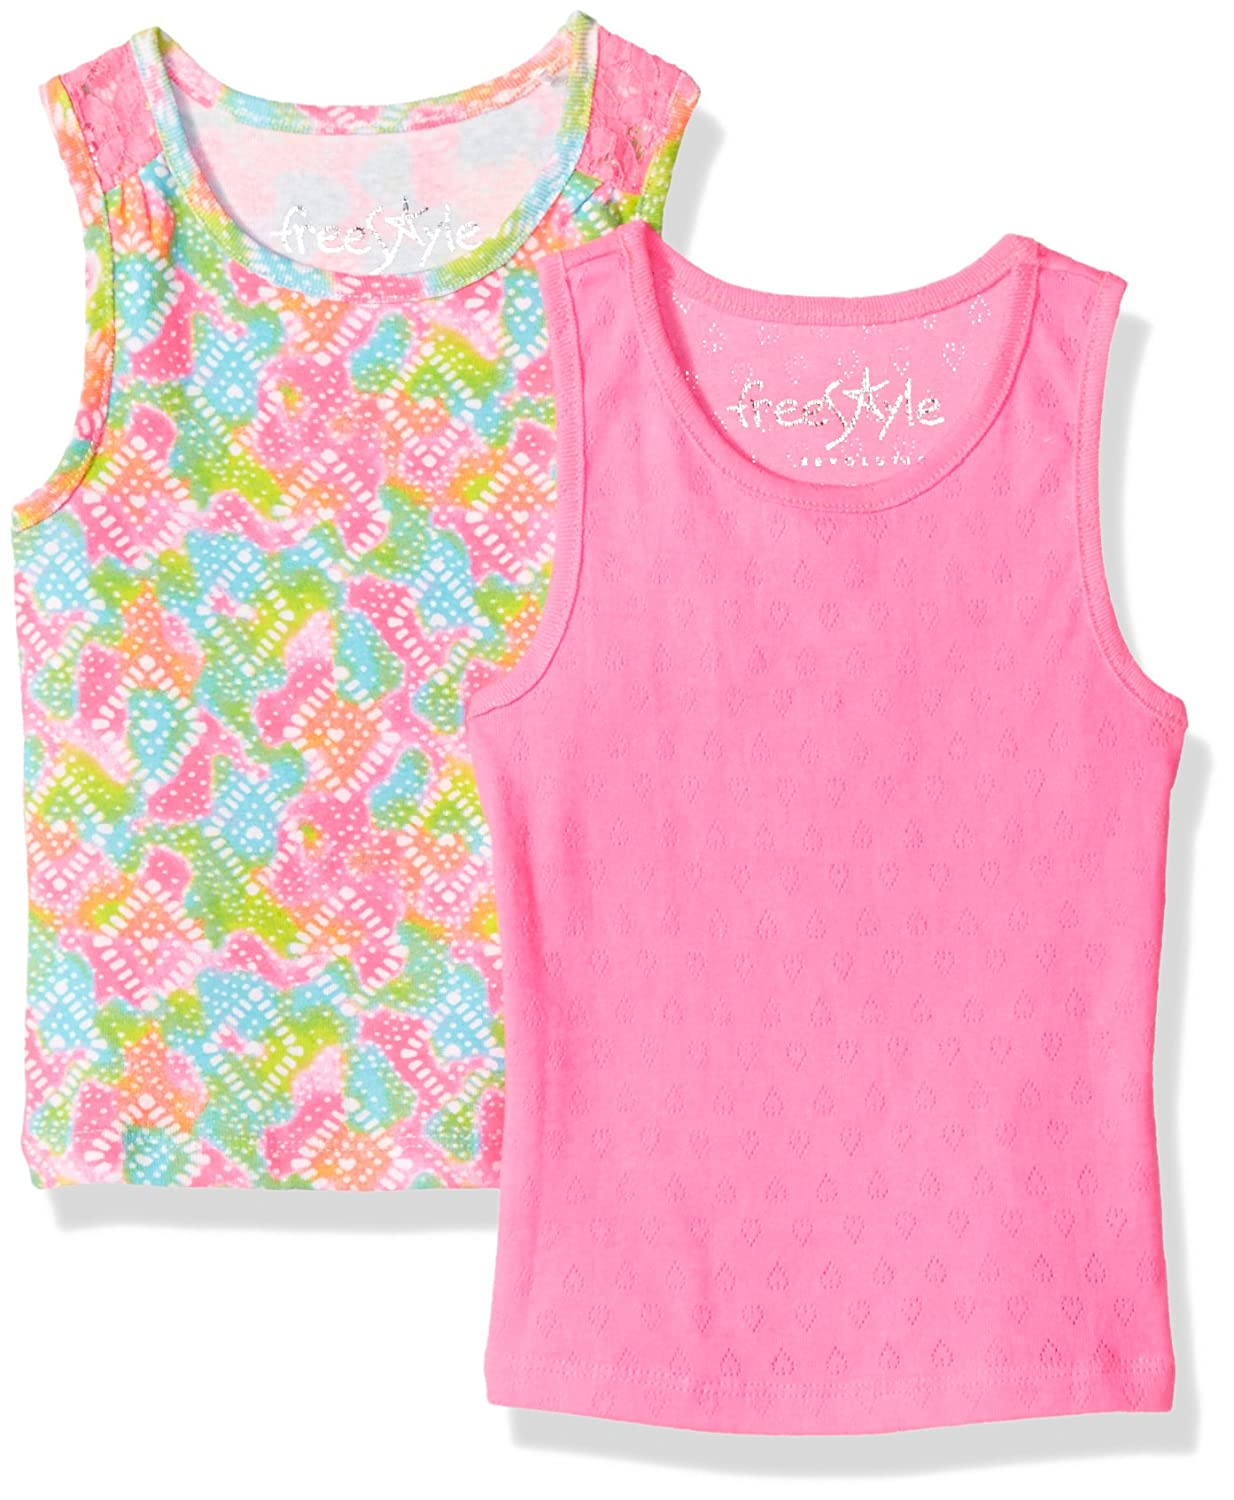 1fc9311aab060 Amazon.com: Freestyle Revolution Girls' Toddler 2pk Tie Dye ...